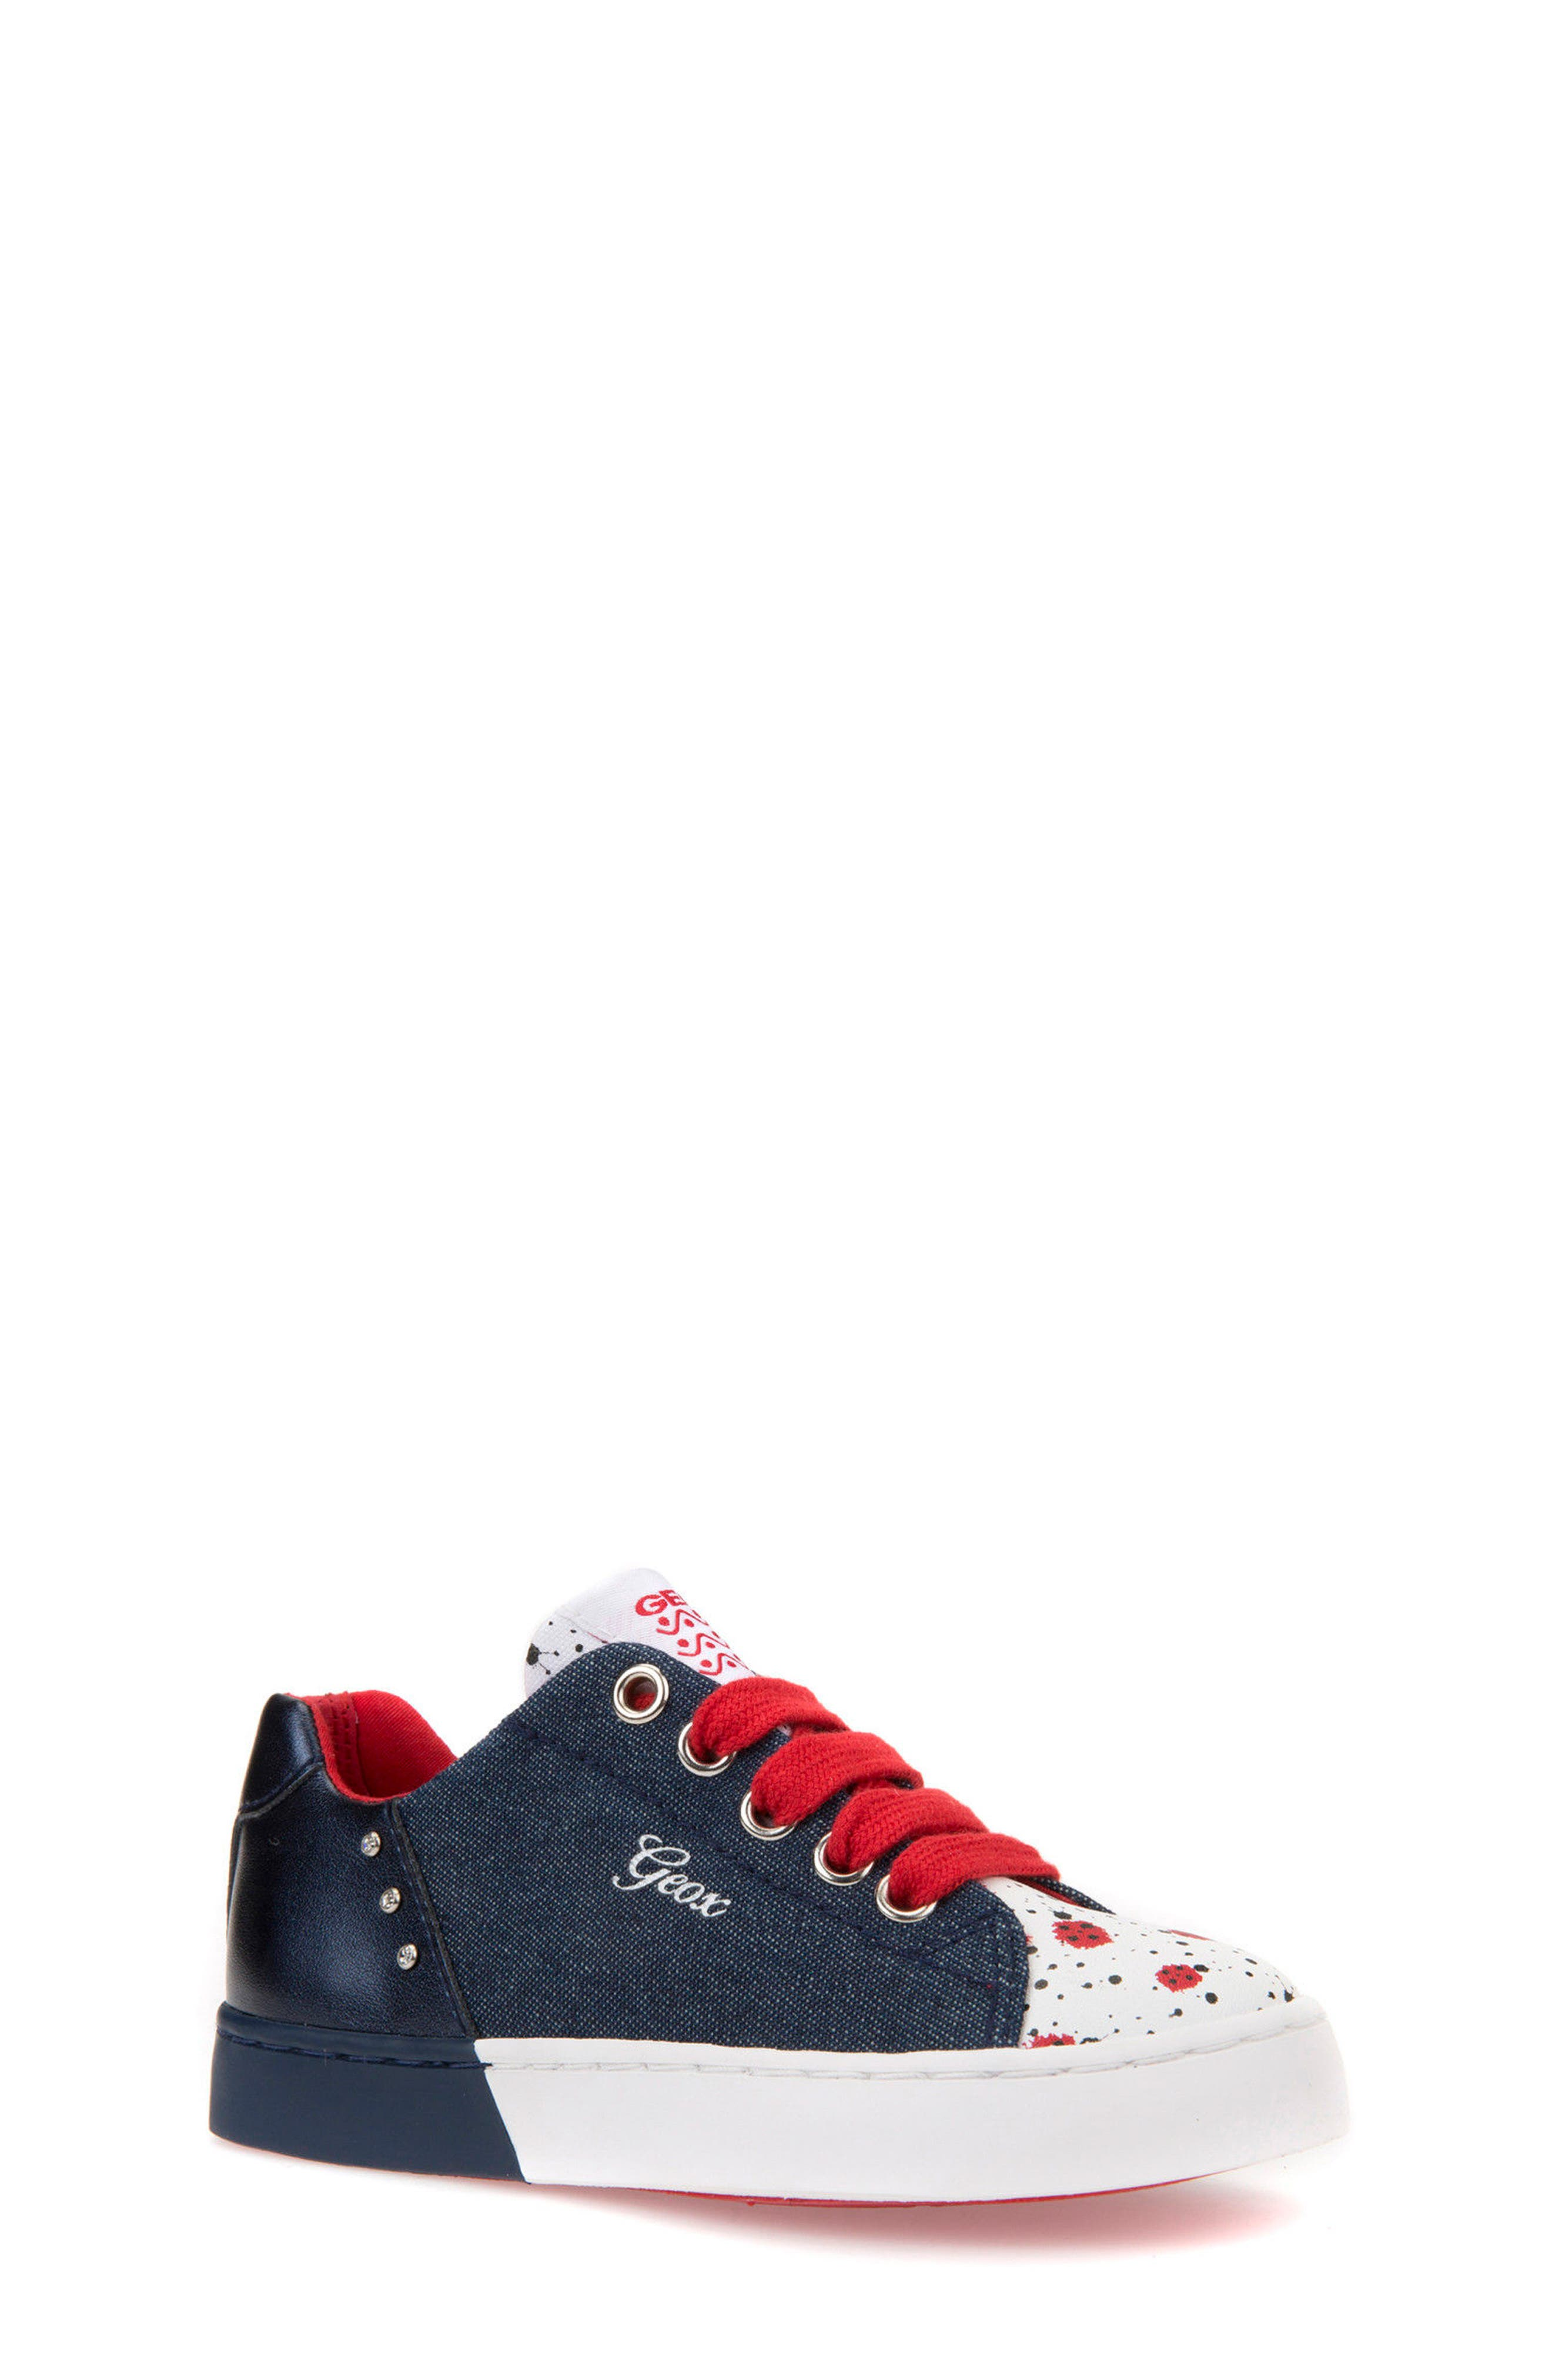 Ciak Low Top Sneaker,                             Main thumbnail 1, color,                             Jeans/ Navy